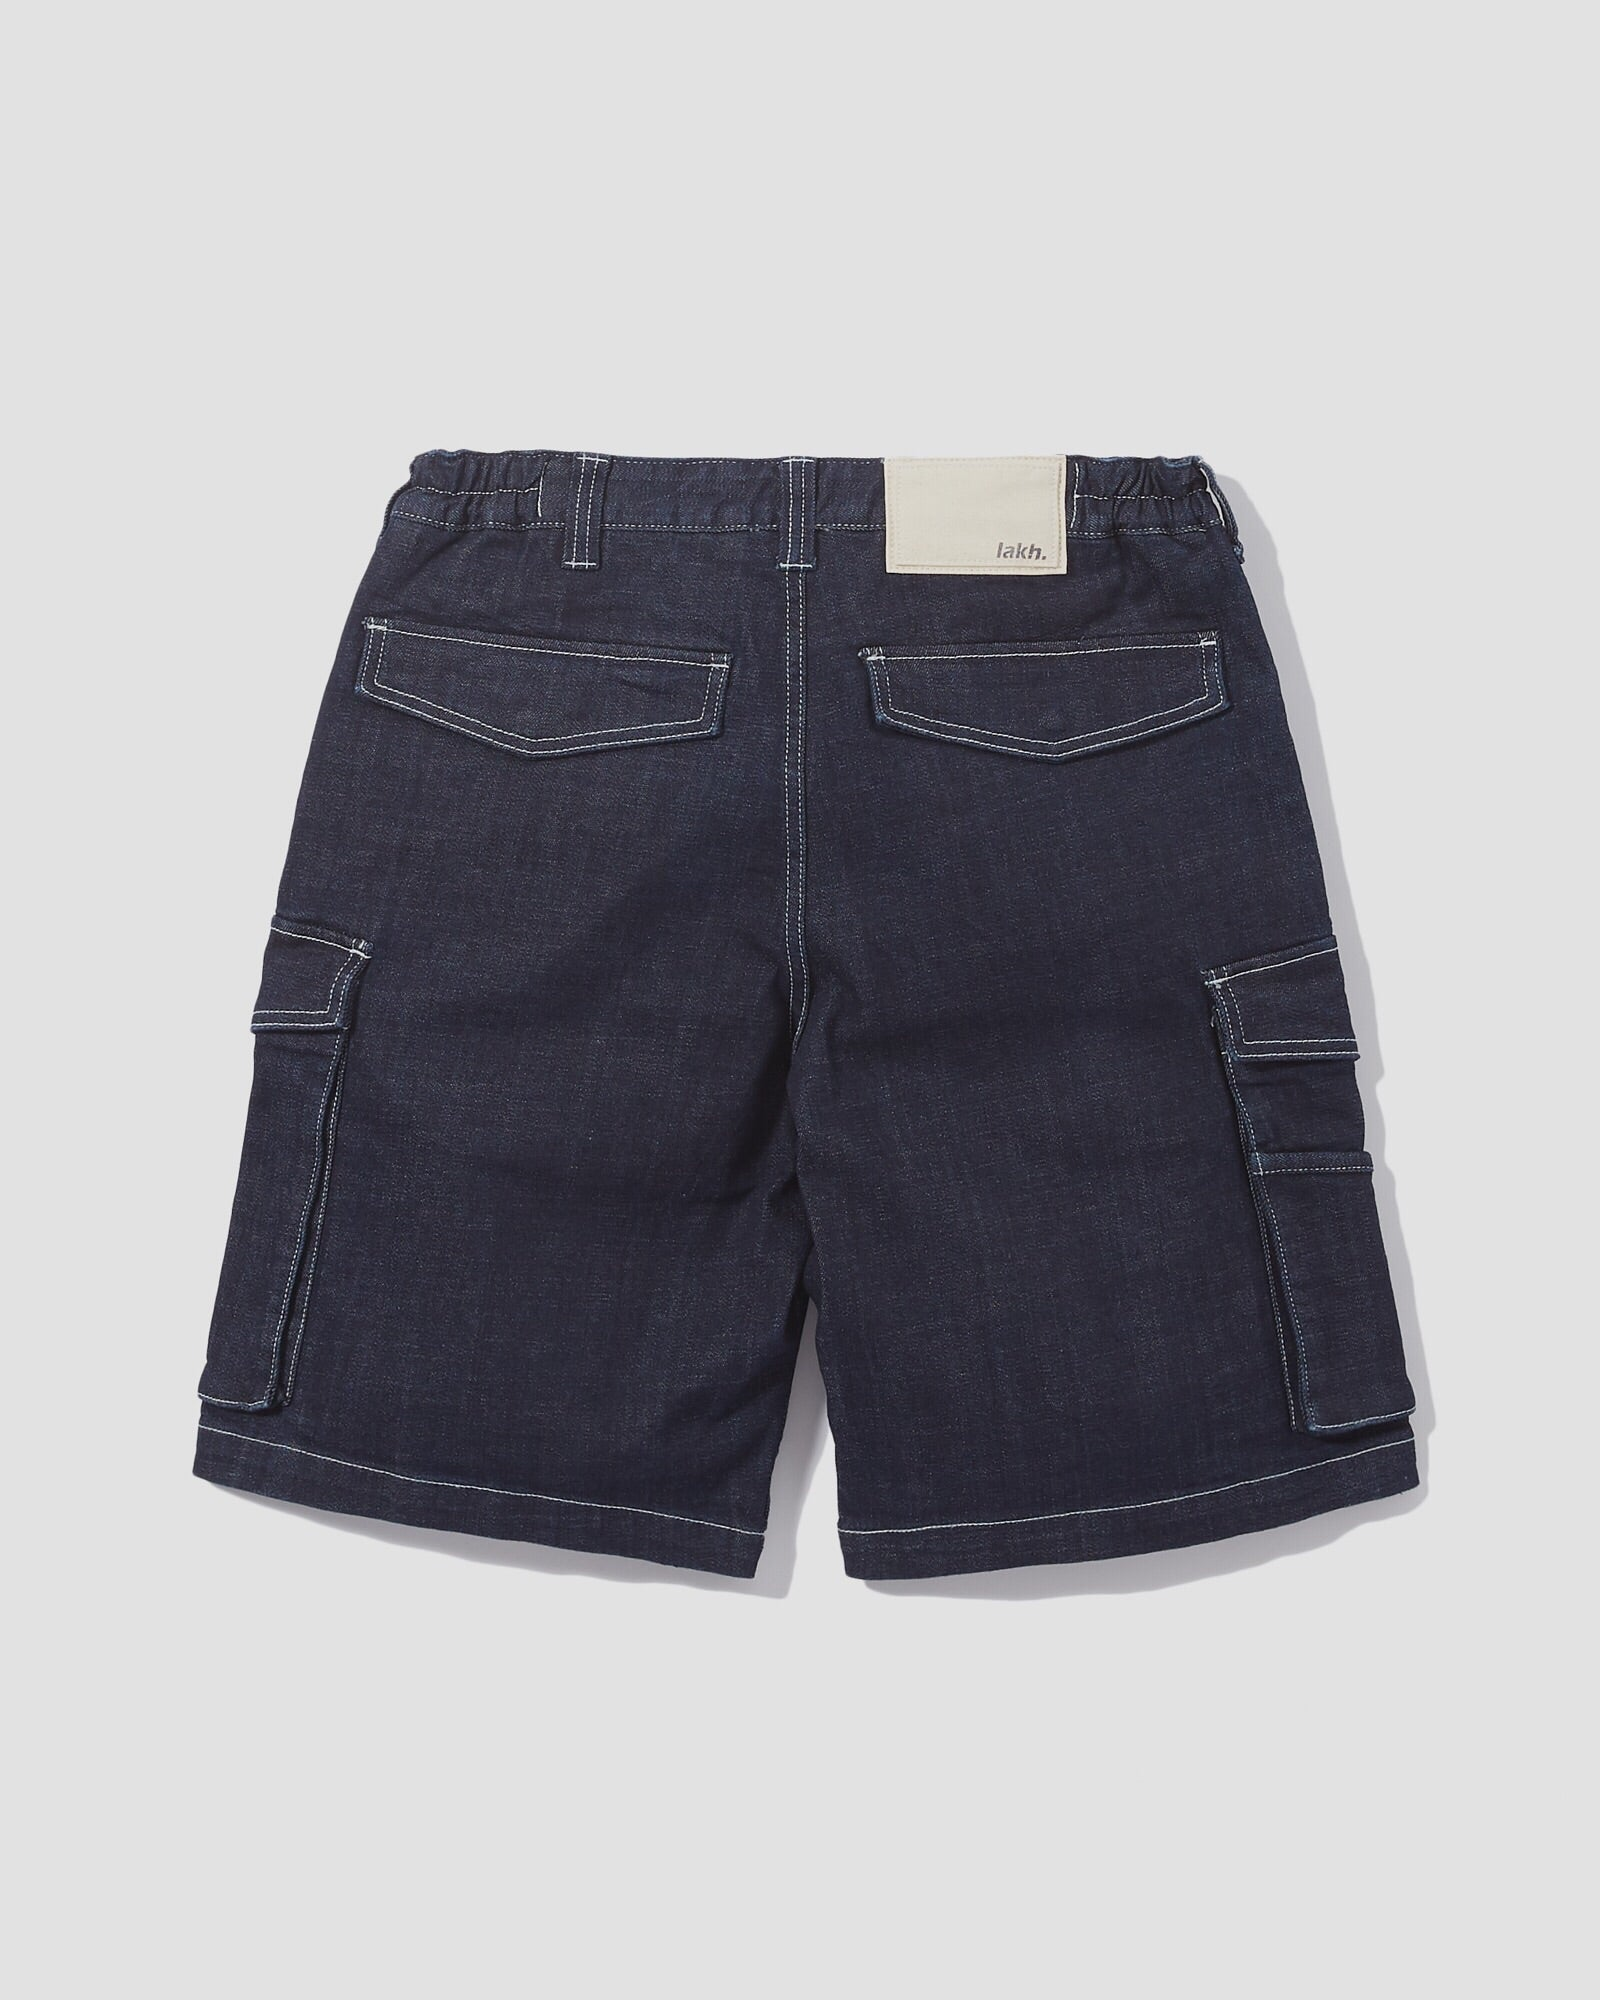 Cargo Shorts Denim - Navy